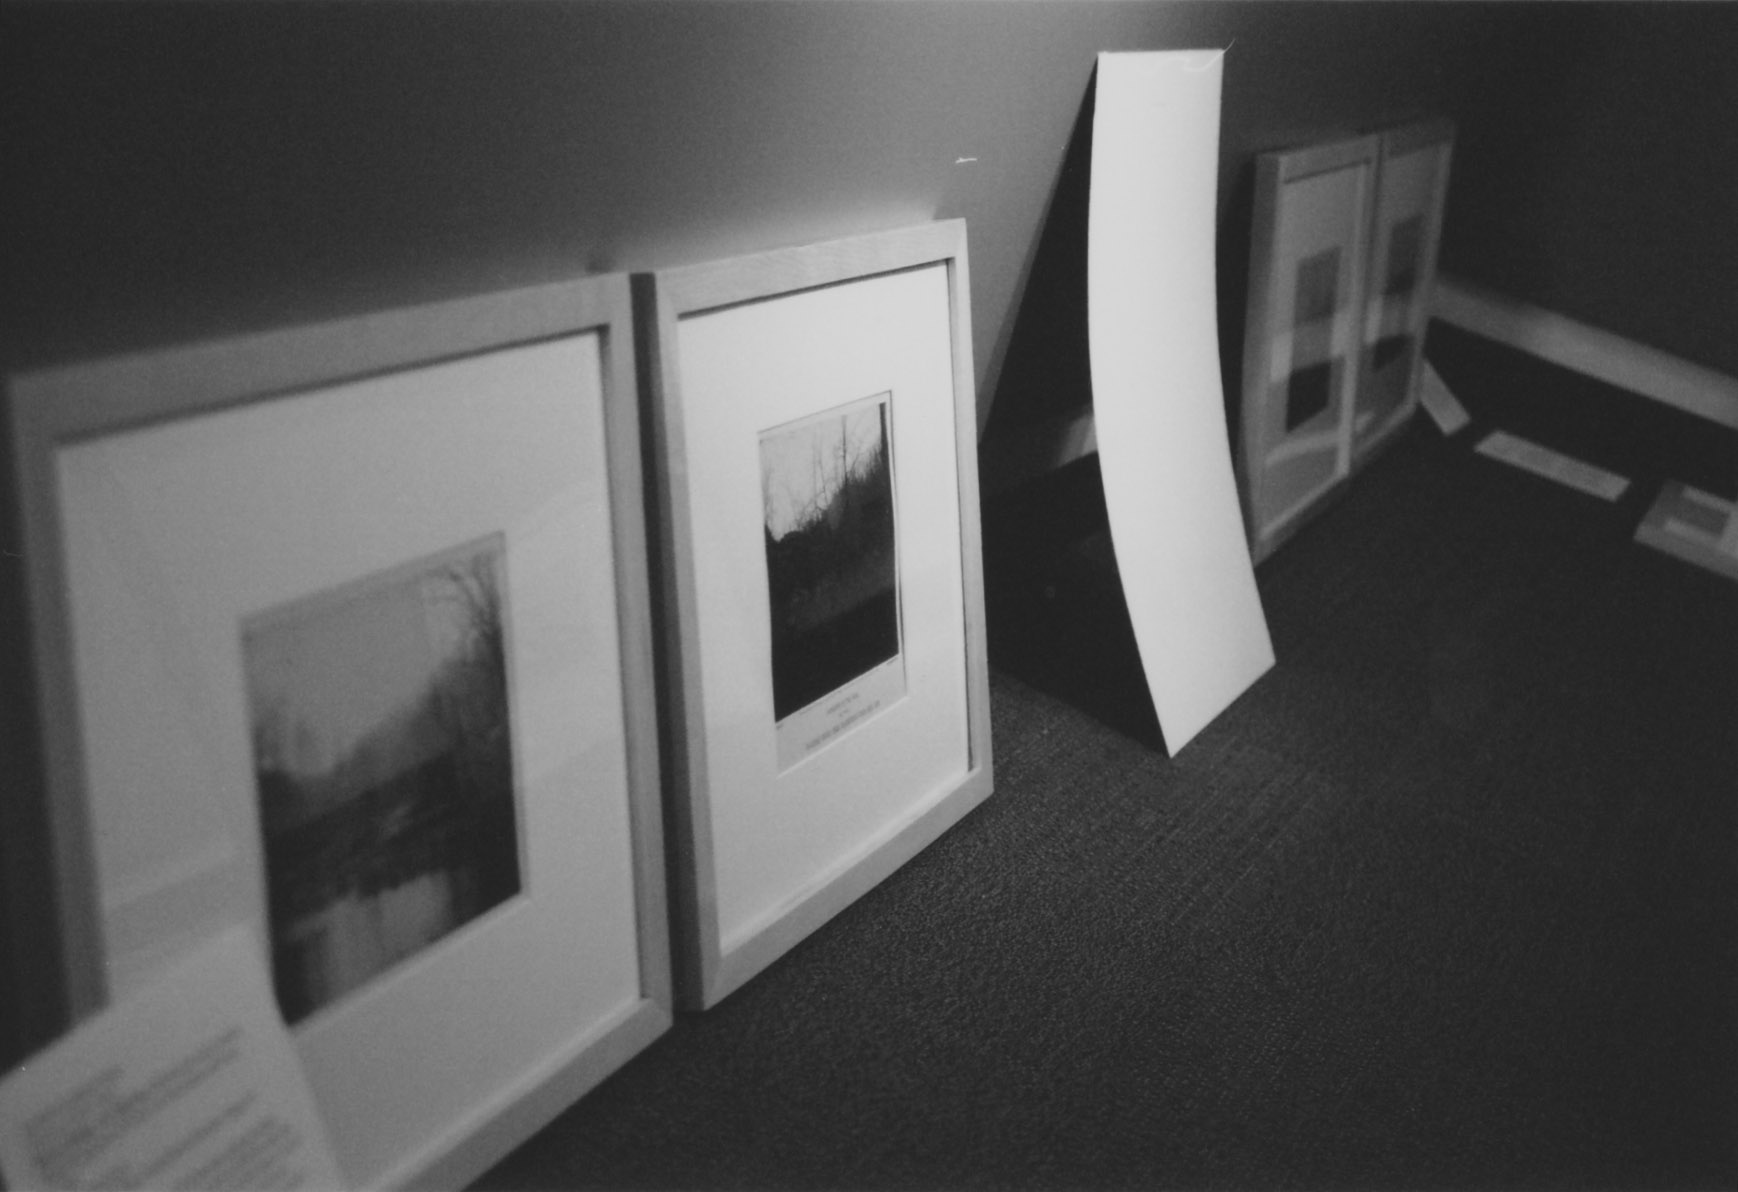 Photographs against the wall